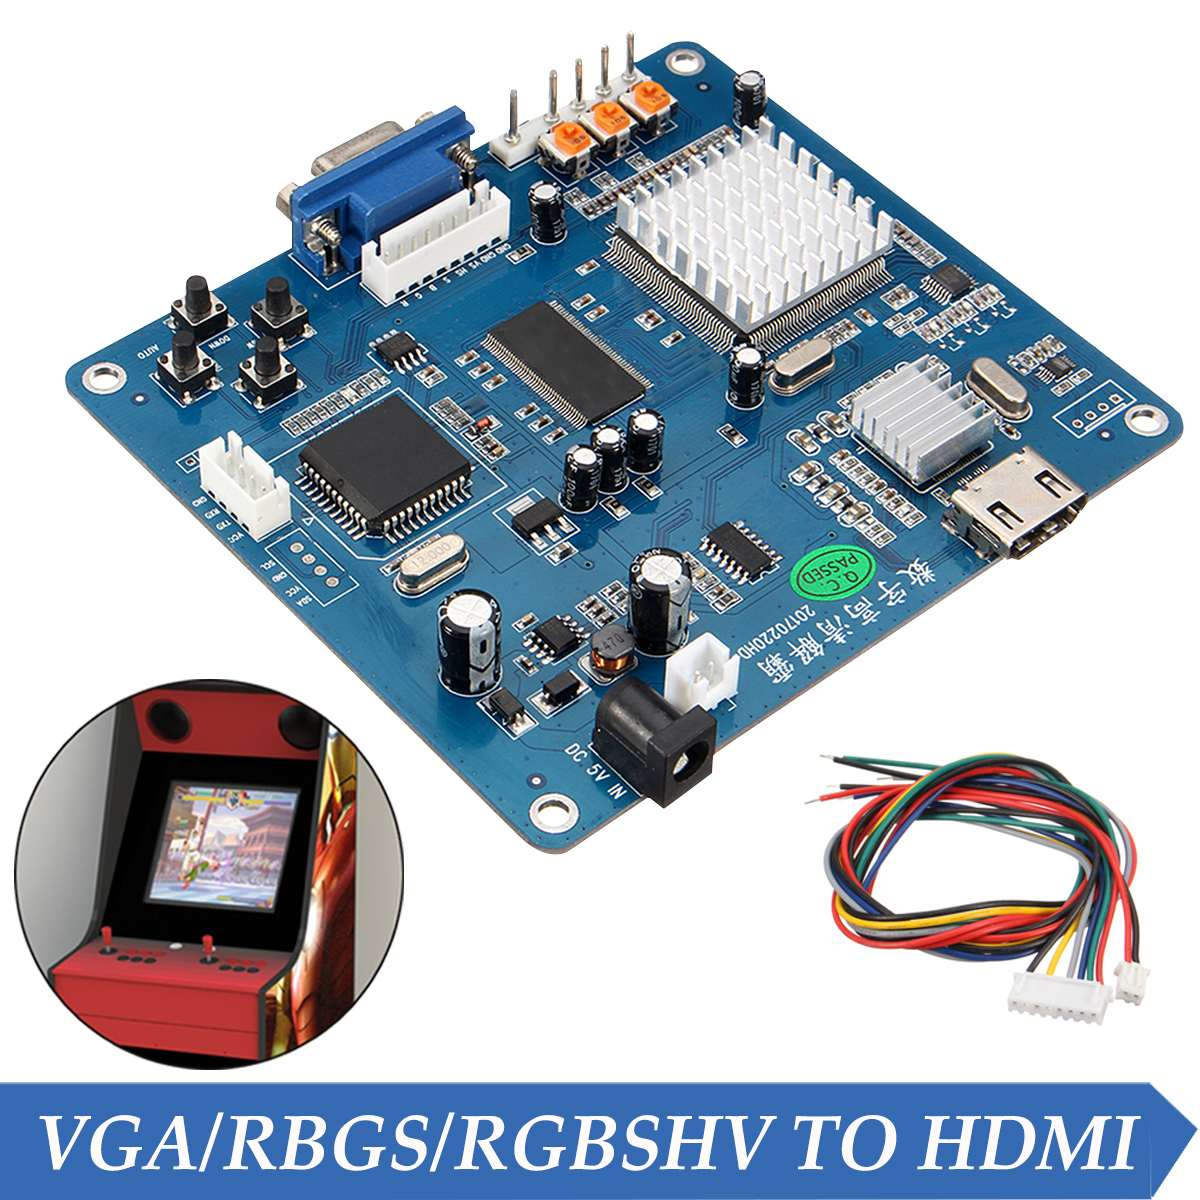 Arcade Game Video Output Converter Board VGA/RGB/CGA/EGA/YUV TO HDMI HD/Jamma Arcade Game Machine Video Output Converter Board fast free ship for gameduino for arduino game vga game development board fpga with serial port verilog code